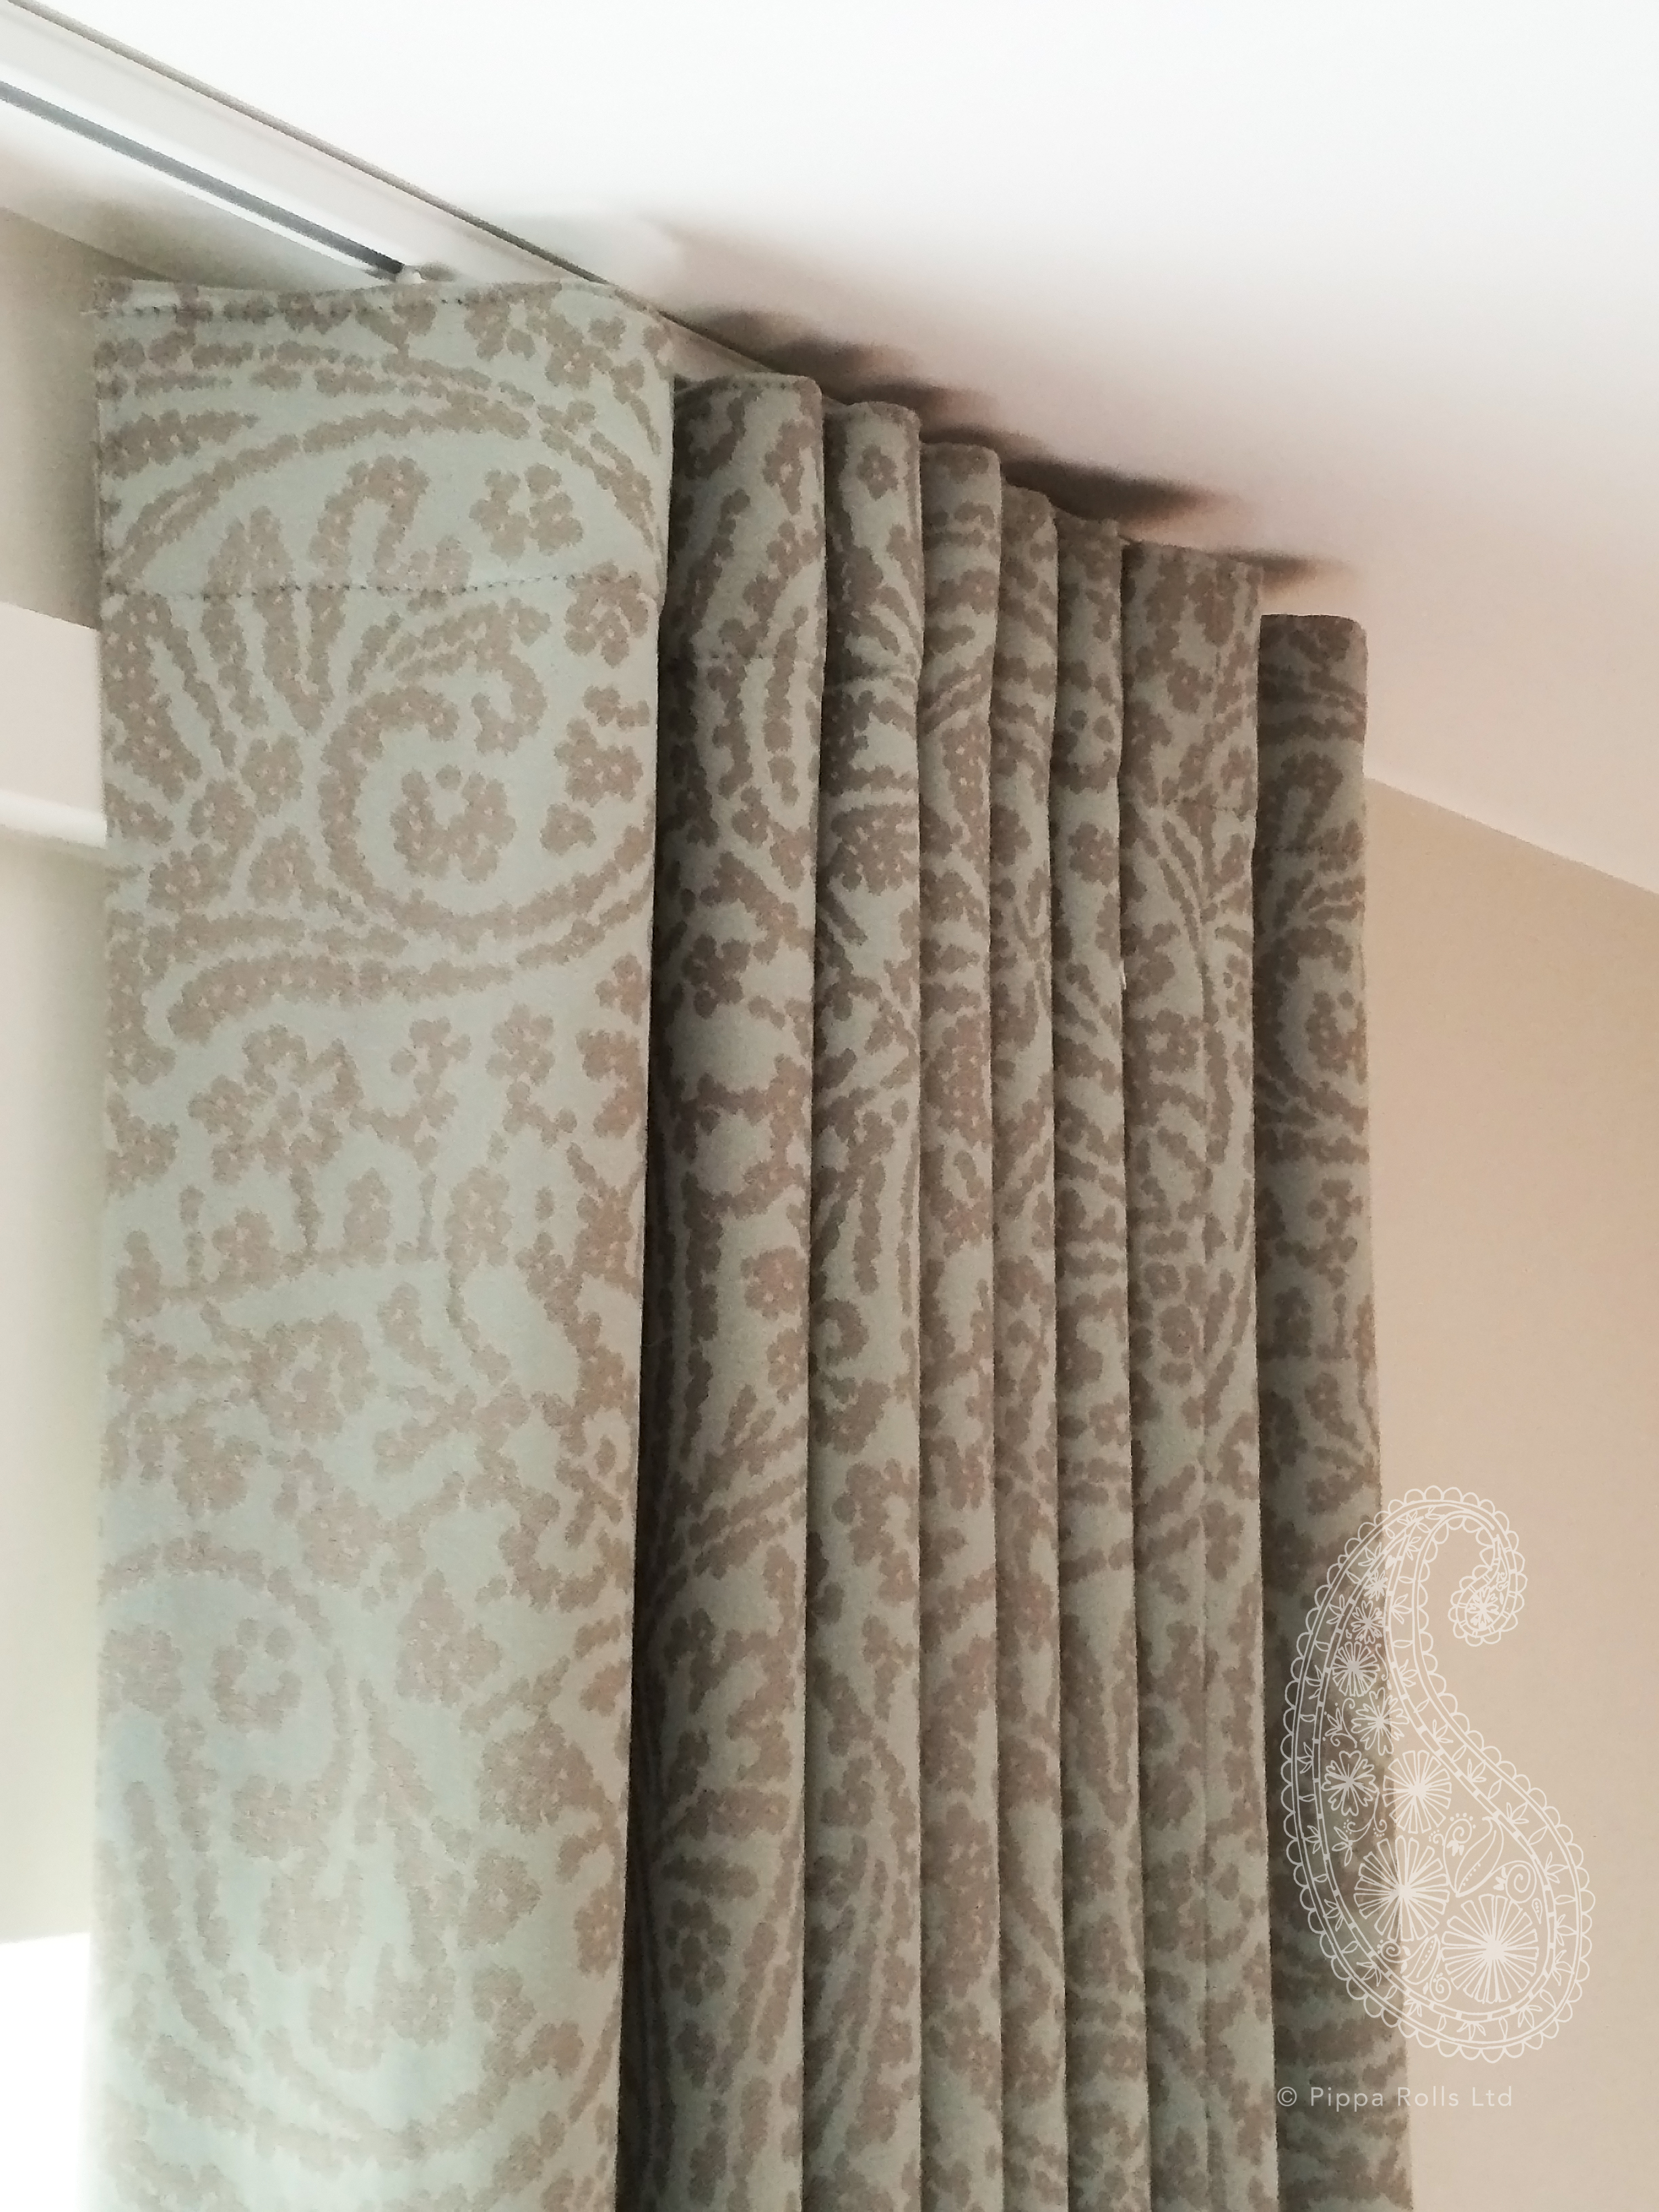 Wave Curtain headings by Pippa Rolls Limited jpeg.jpg